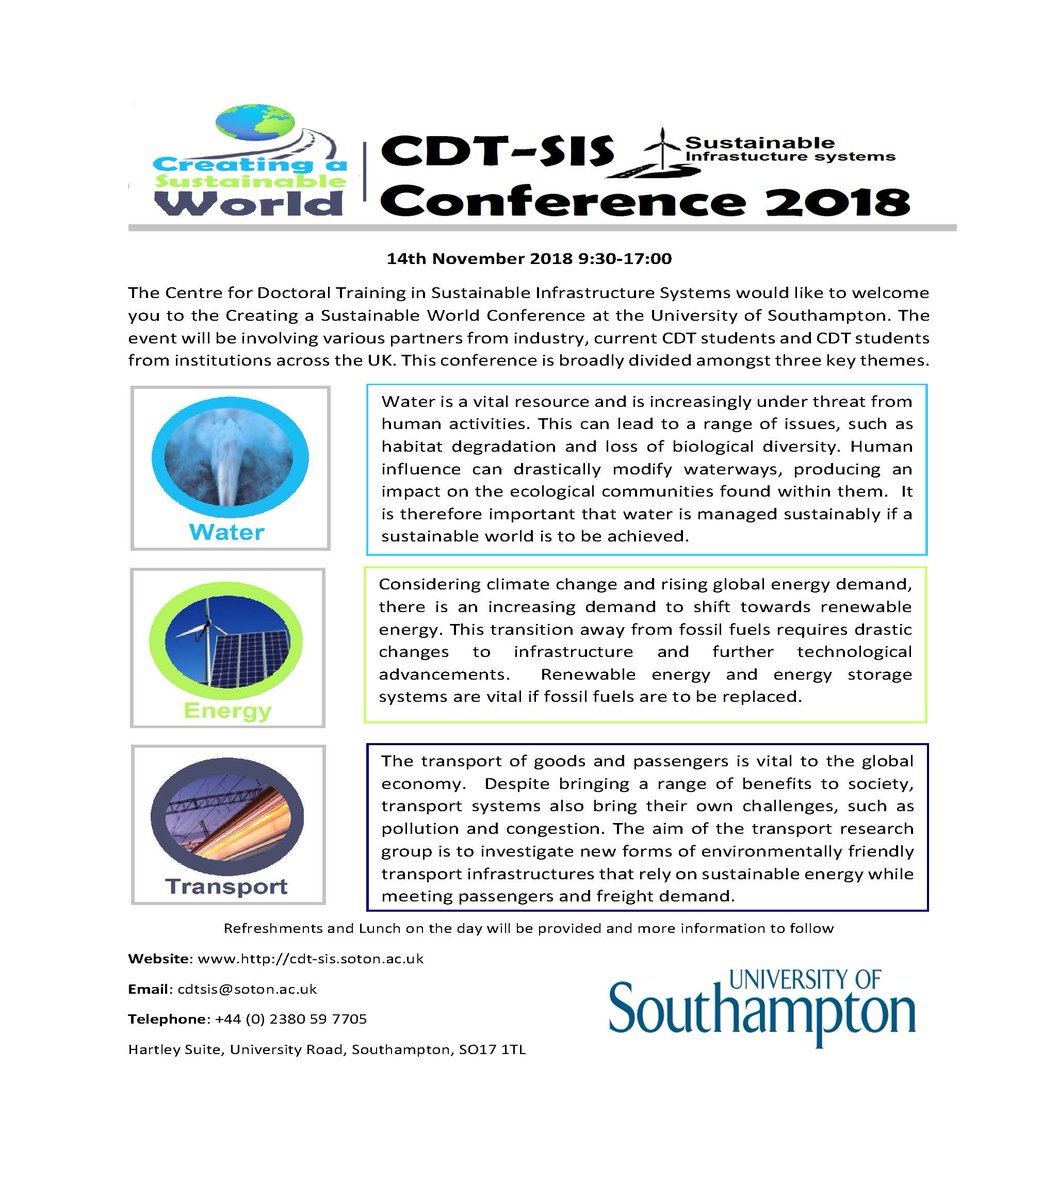 test Twitter Media - Remember to sign up to the @CDTConference we still have spaces for presenters, posters or if you would like to attend as general admission we have plenty of spaces remaining! Come and find out about how together we can create a sustainable world! @unisouthampton @SotonEngEnv https://t.co/oHAdmUp4Fs